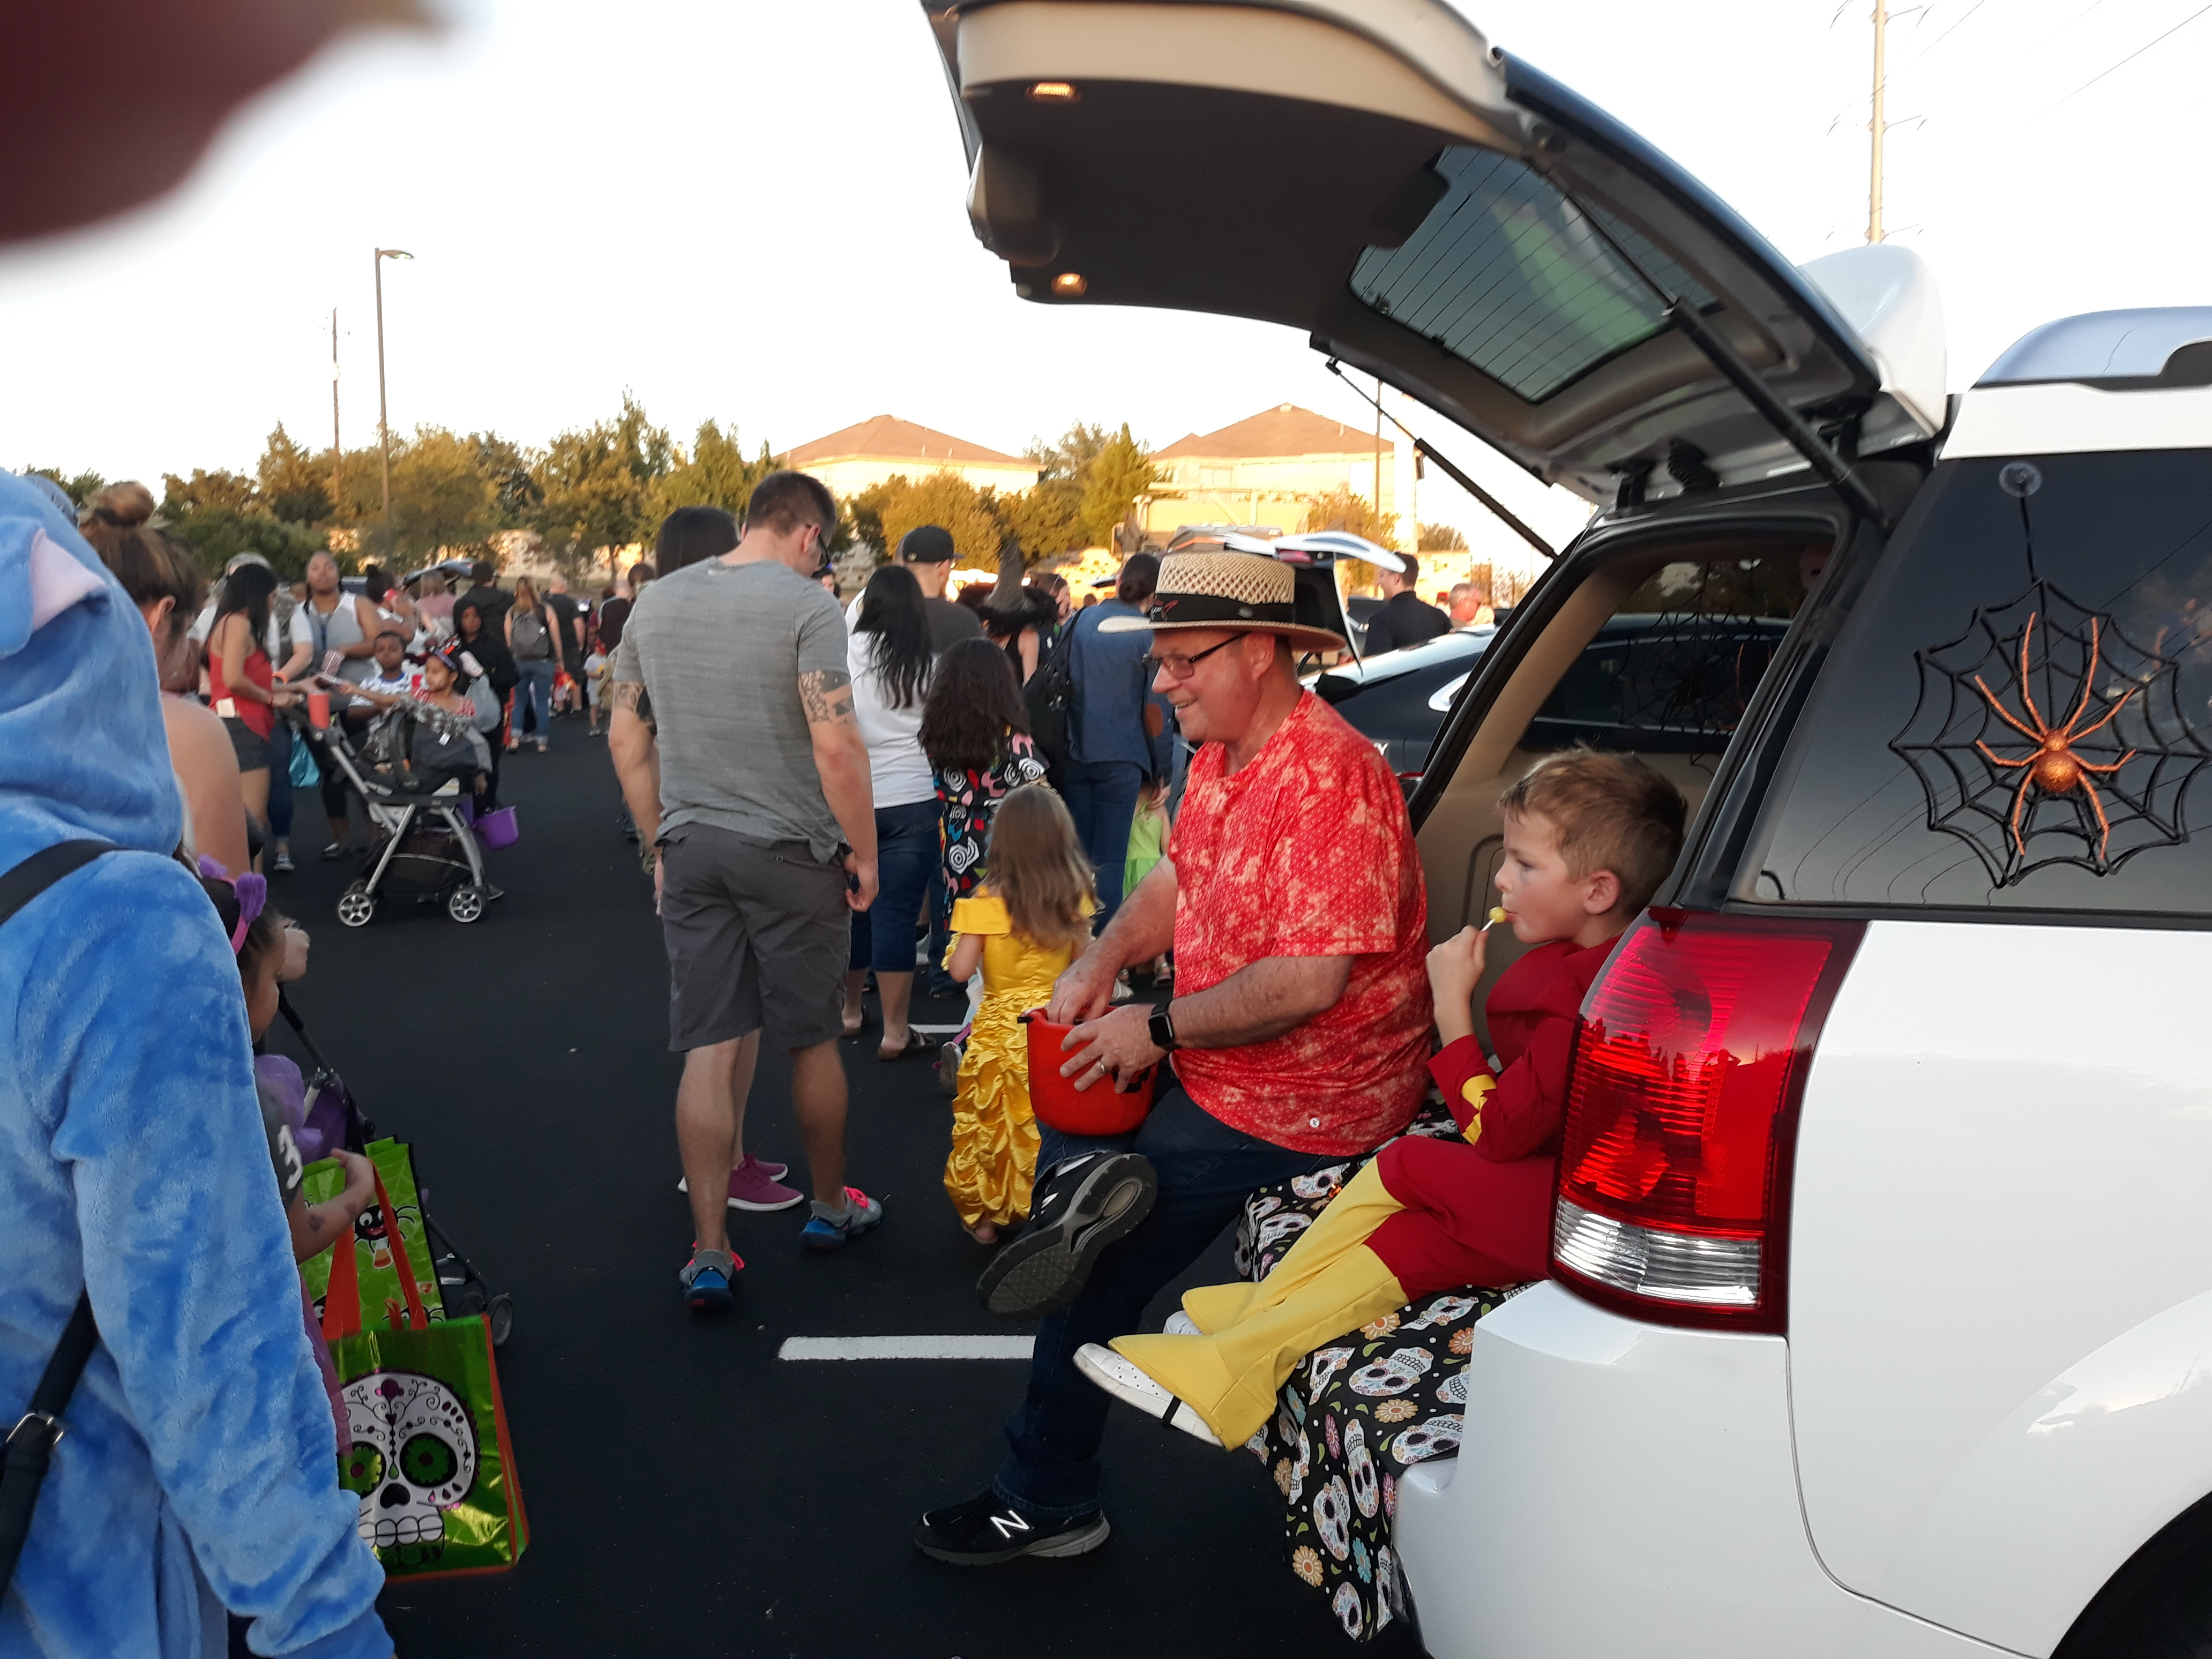 Jeff Johnson of Precinct 1 hands out candy to hundreds of kids. Grandson Liam Johnson looks on while enjoying a lollipop.